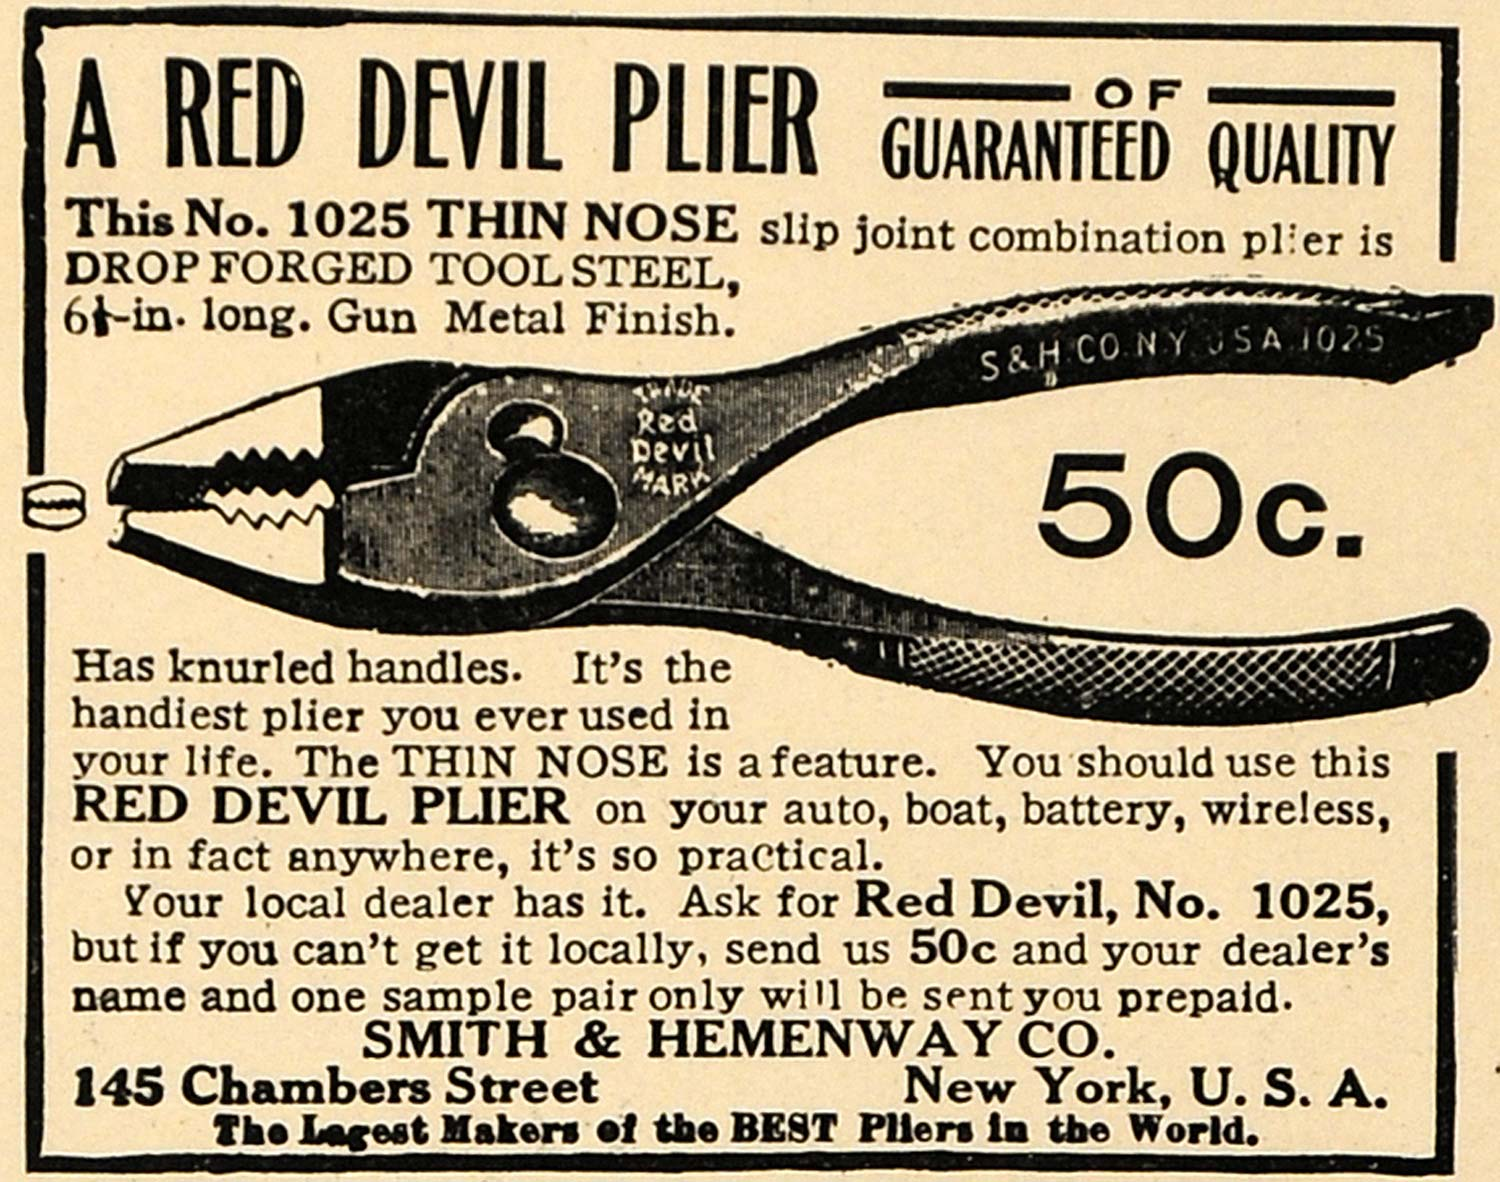 1915 Ad Smith & Hemenway Co. Red Devil Plier Tools - ORIGINAL ADVERTISING ILW1